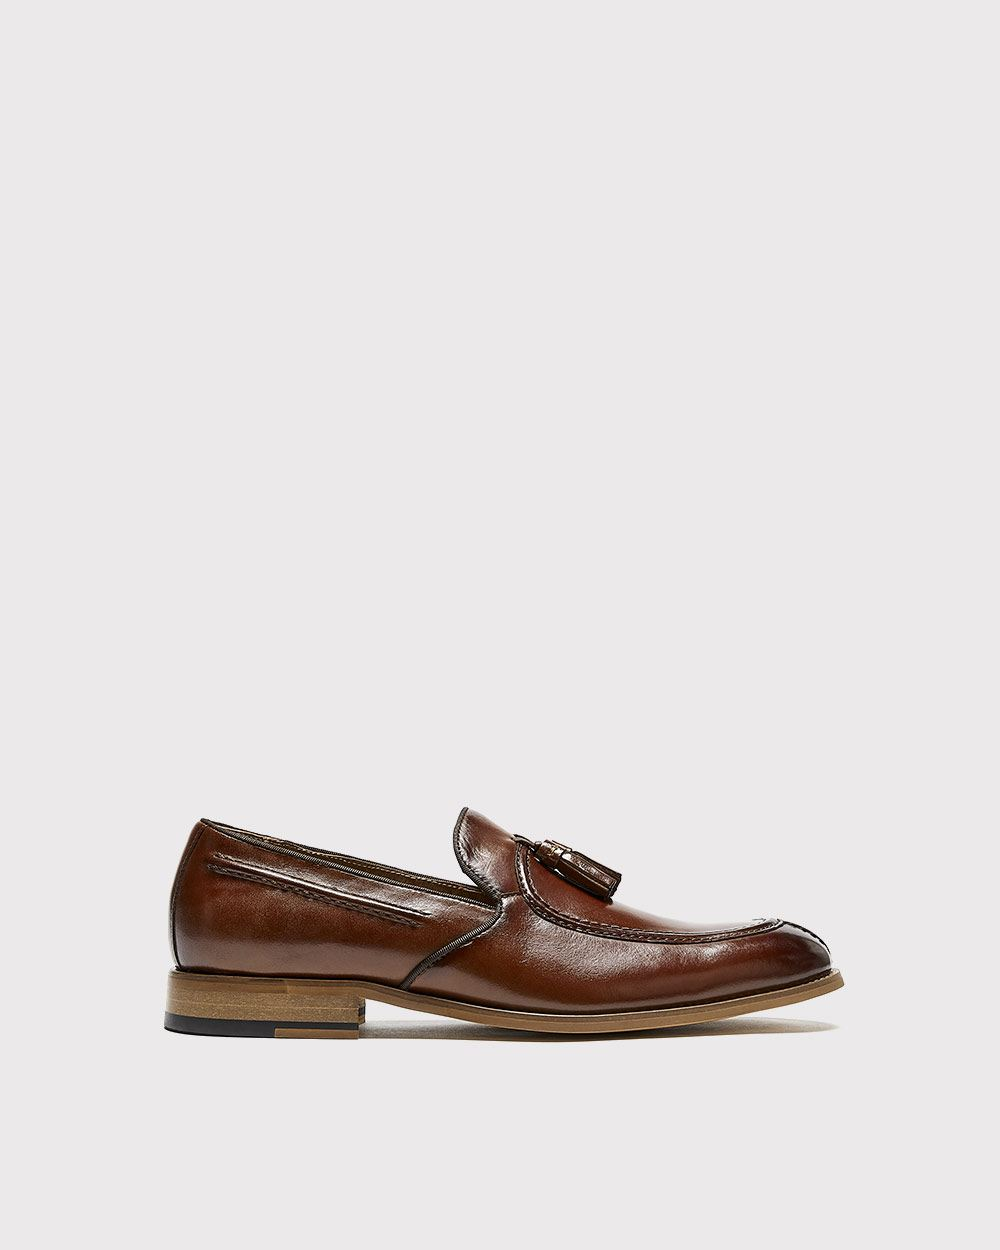 Stacy Adams (TM) Donovan leather loafer with tassels